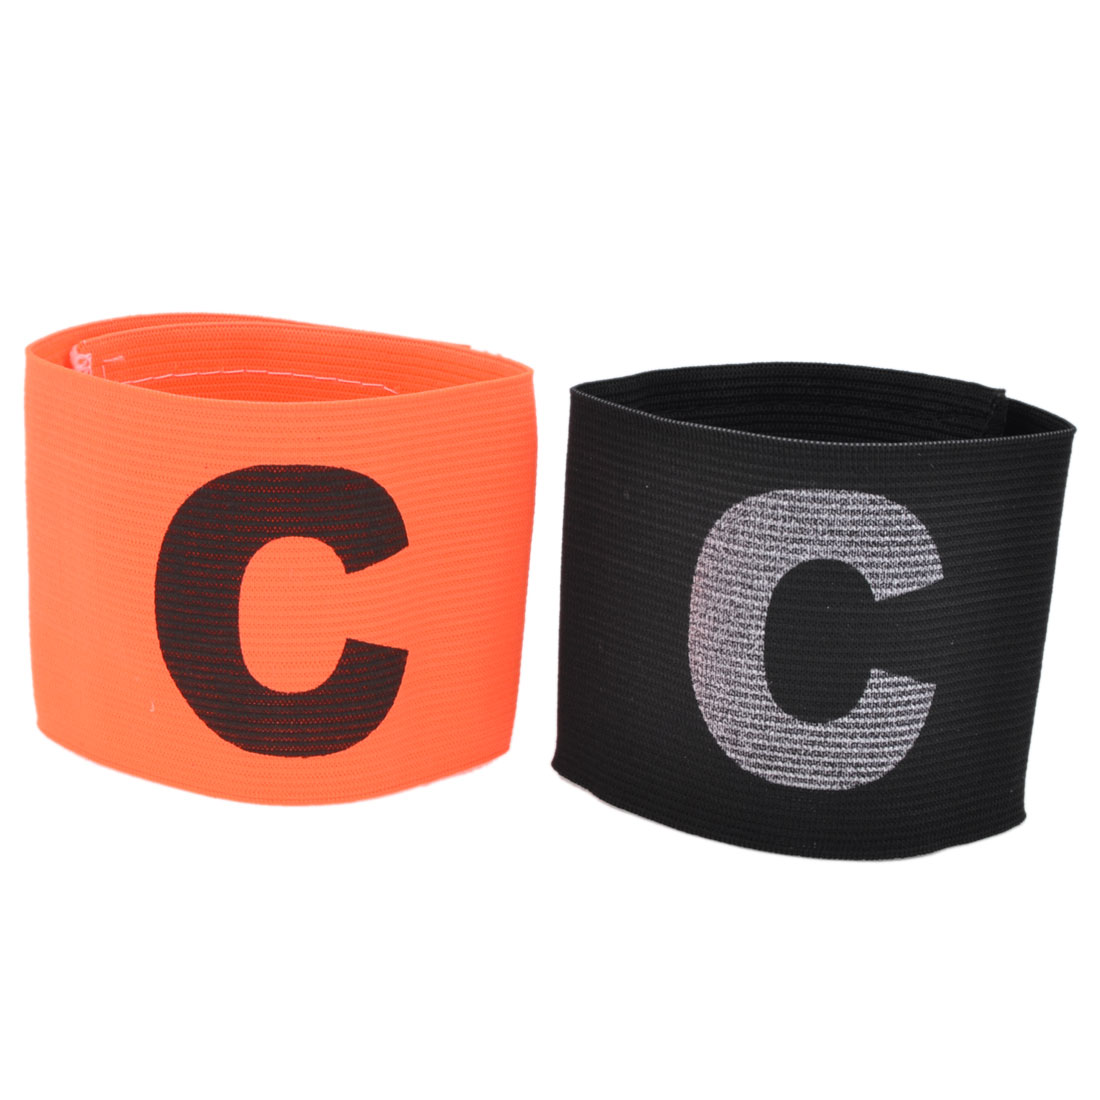 Hook Loop Closure Stretchy Football Captain Armband Badge Orange Black 2pcs